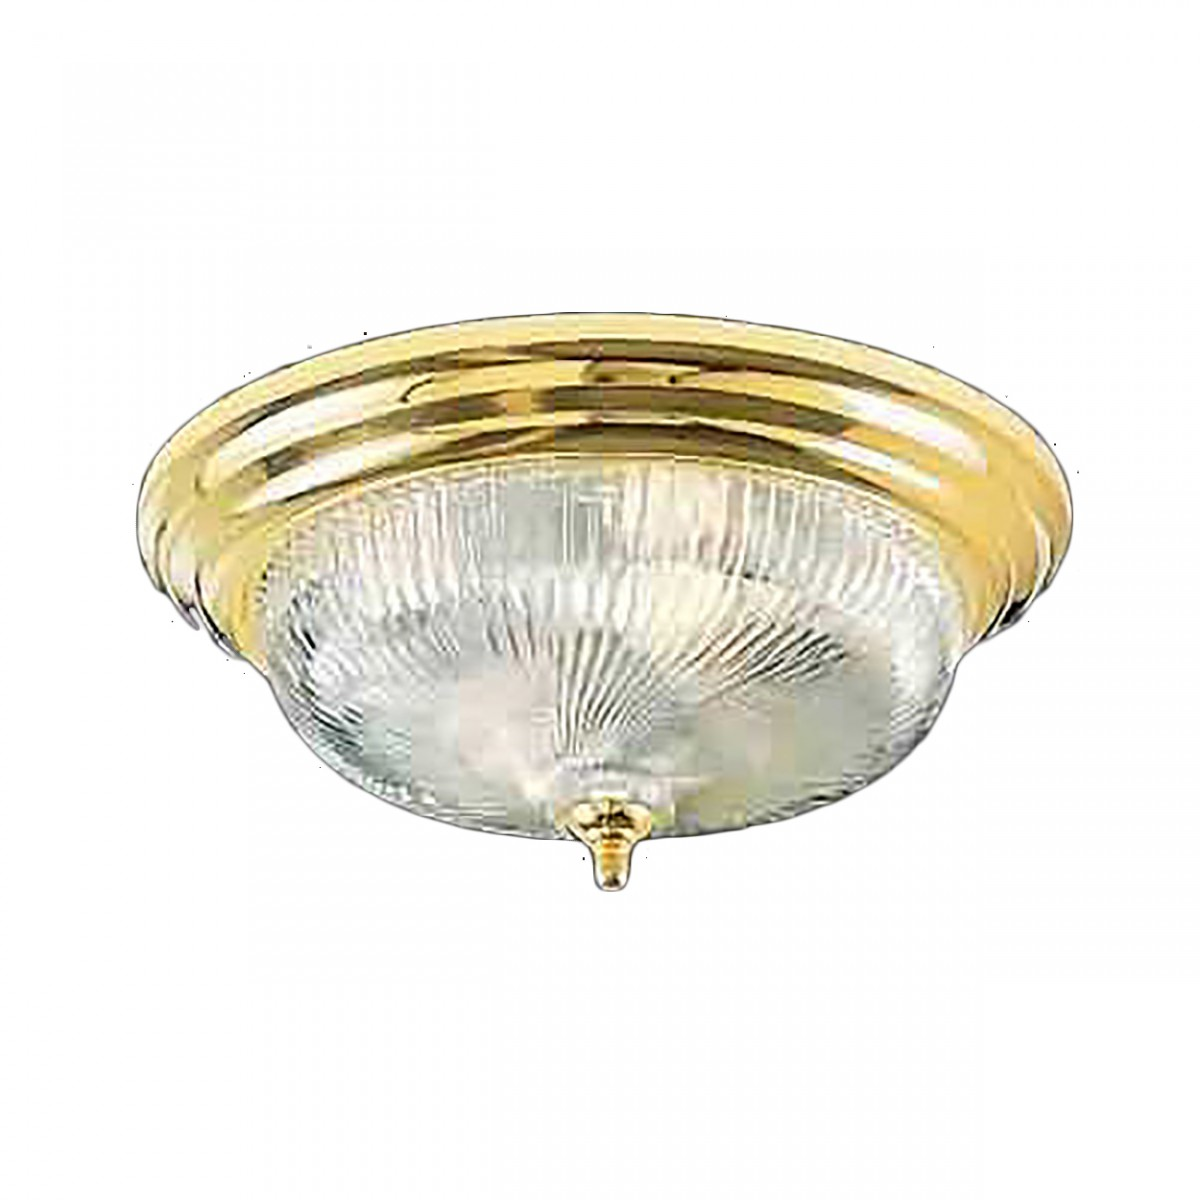 Lights brass flush mount swirl light 15 12d ceiling lights brass flush mount swirl light 15 12d mozeypictures Images